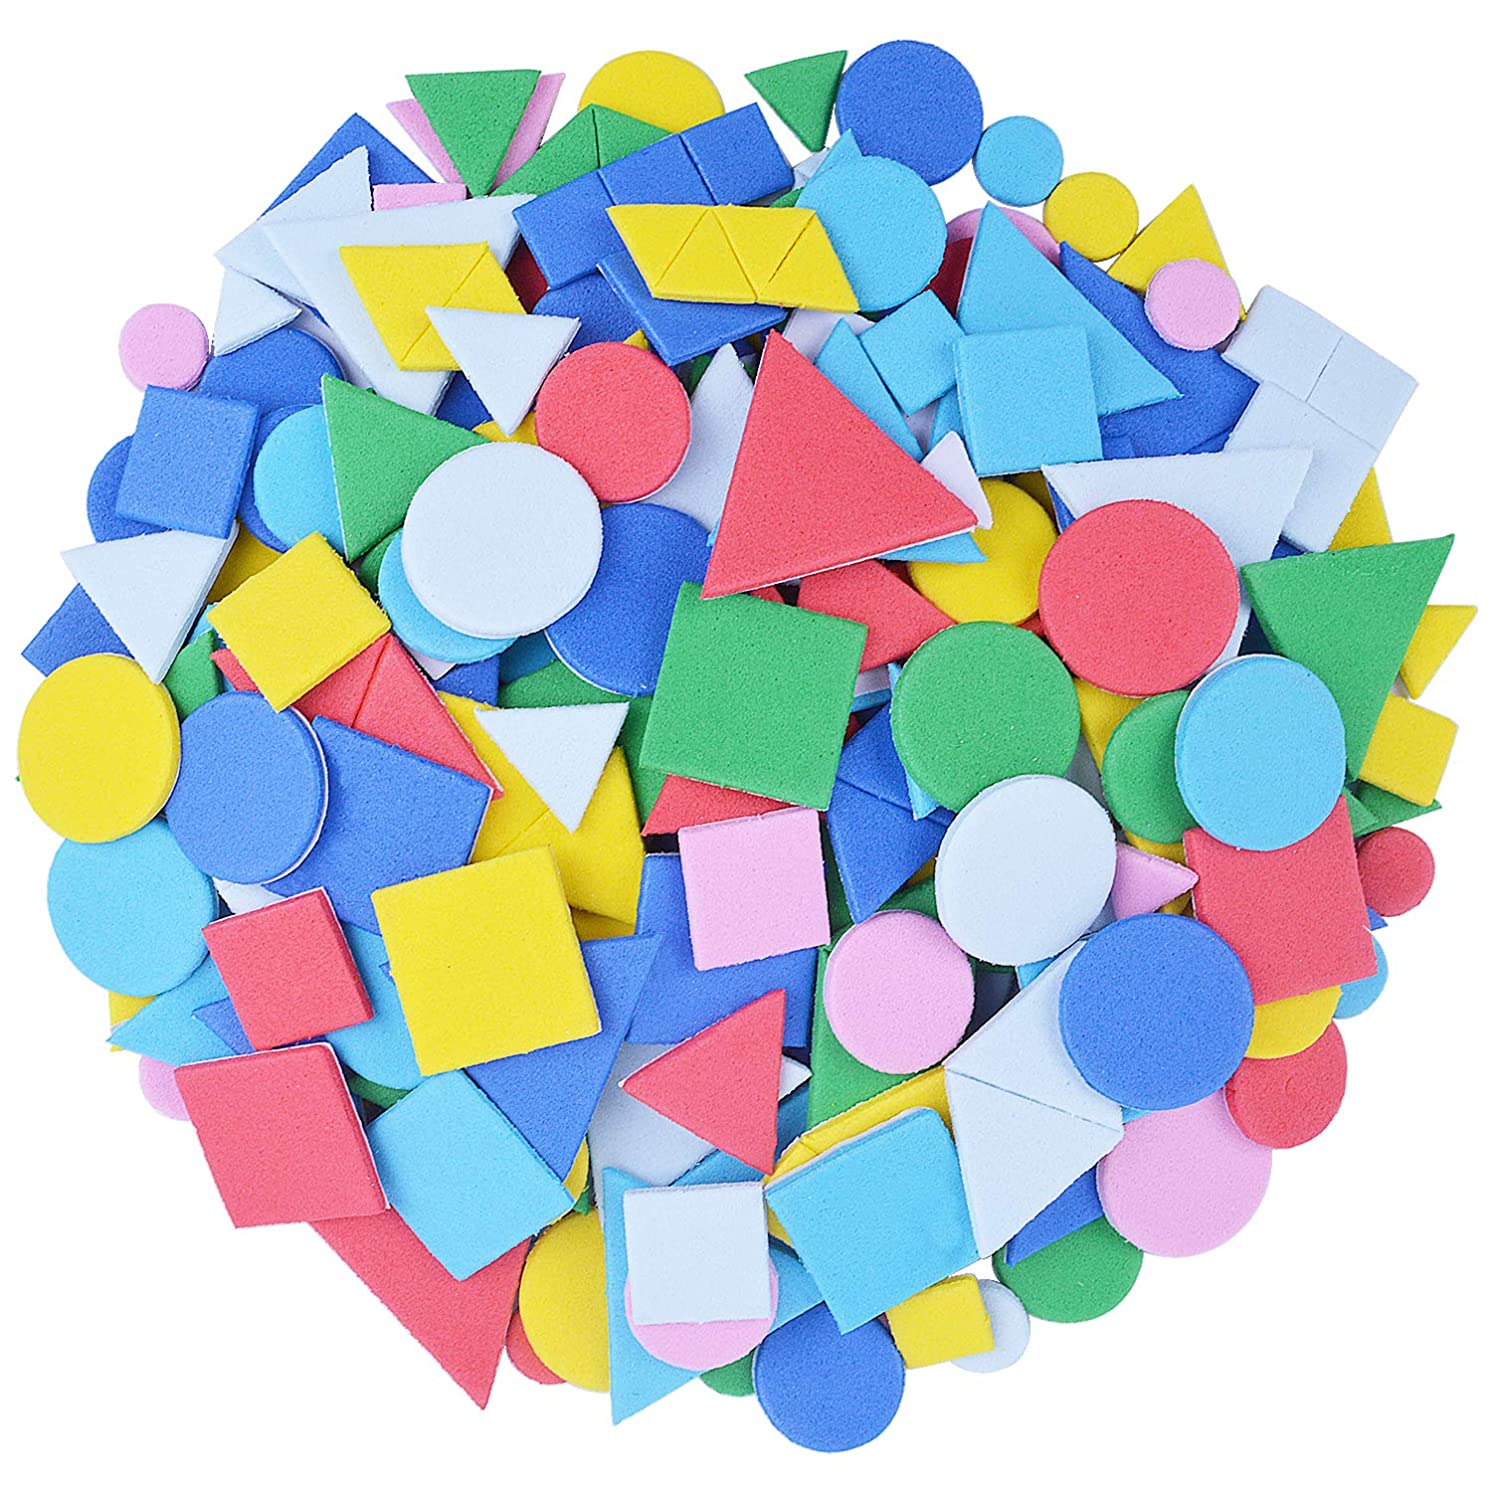 BronaGrand 15g Small Geometry Stickers Self Adhesive EVA Foam Sticker for Creative Crafts and Arts Making, Assorted Colors(Approx.250 Pieces)